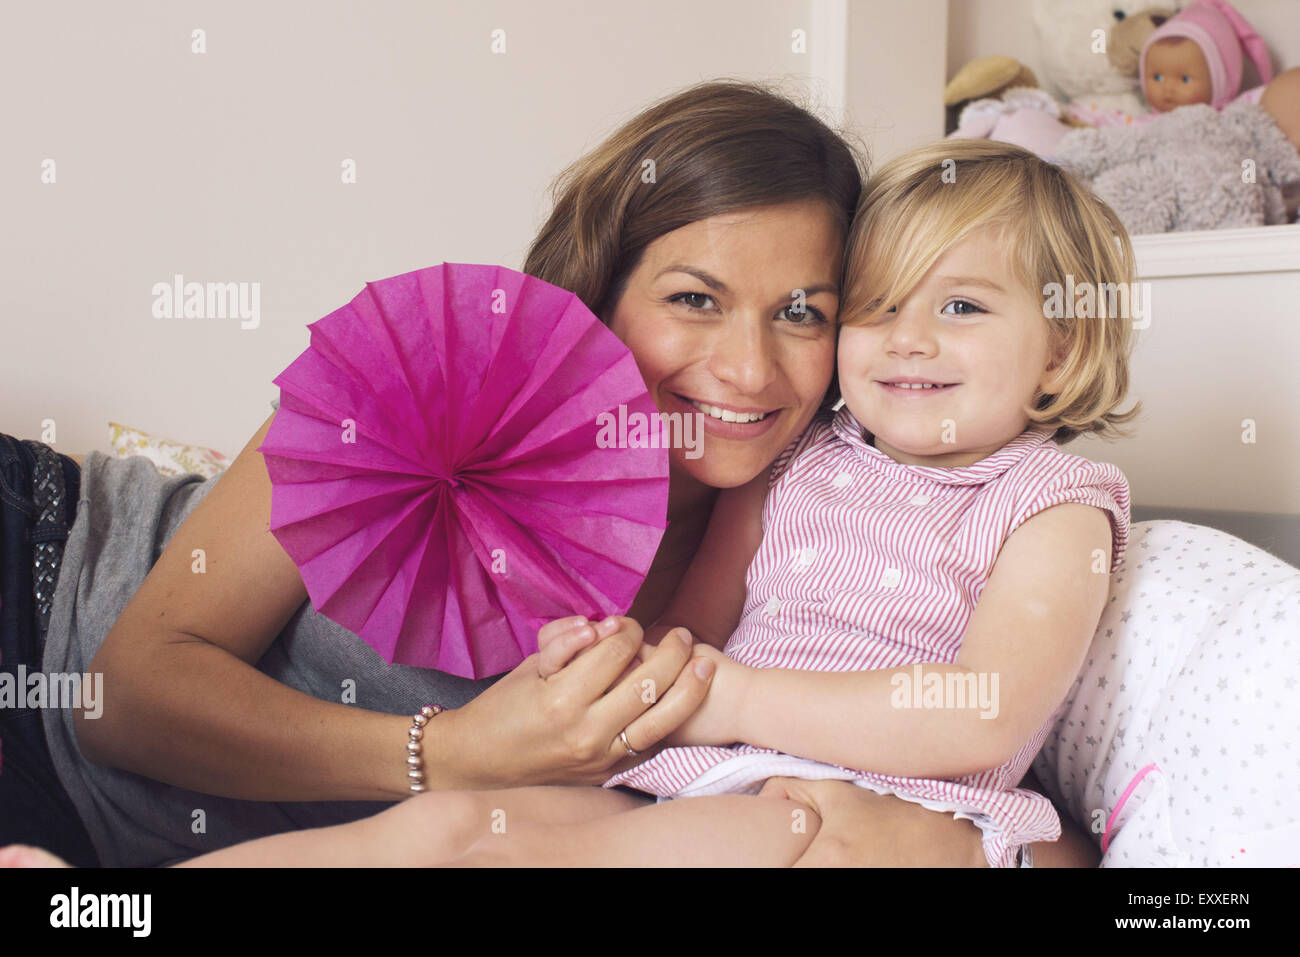 Mother and daughter, portrait - Stock Image